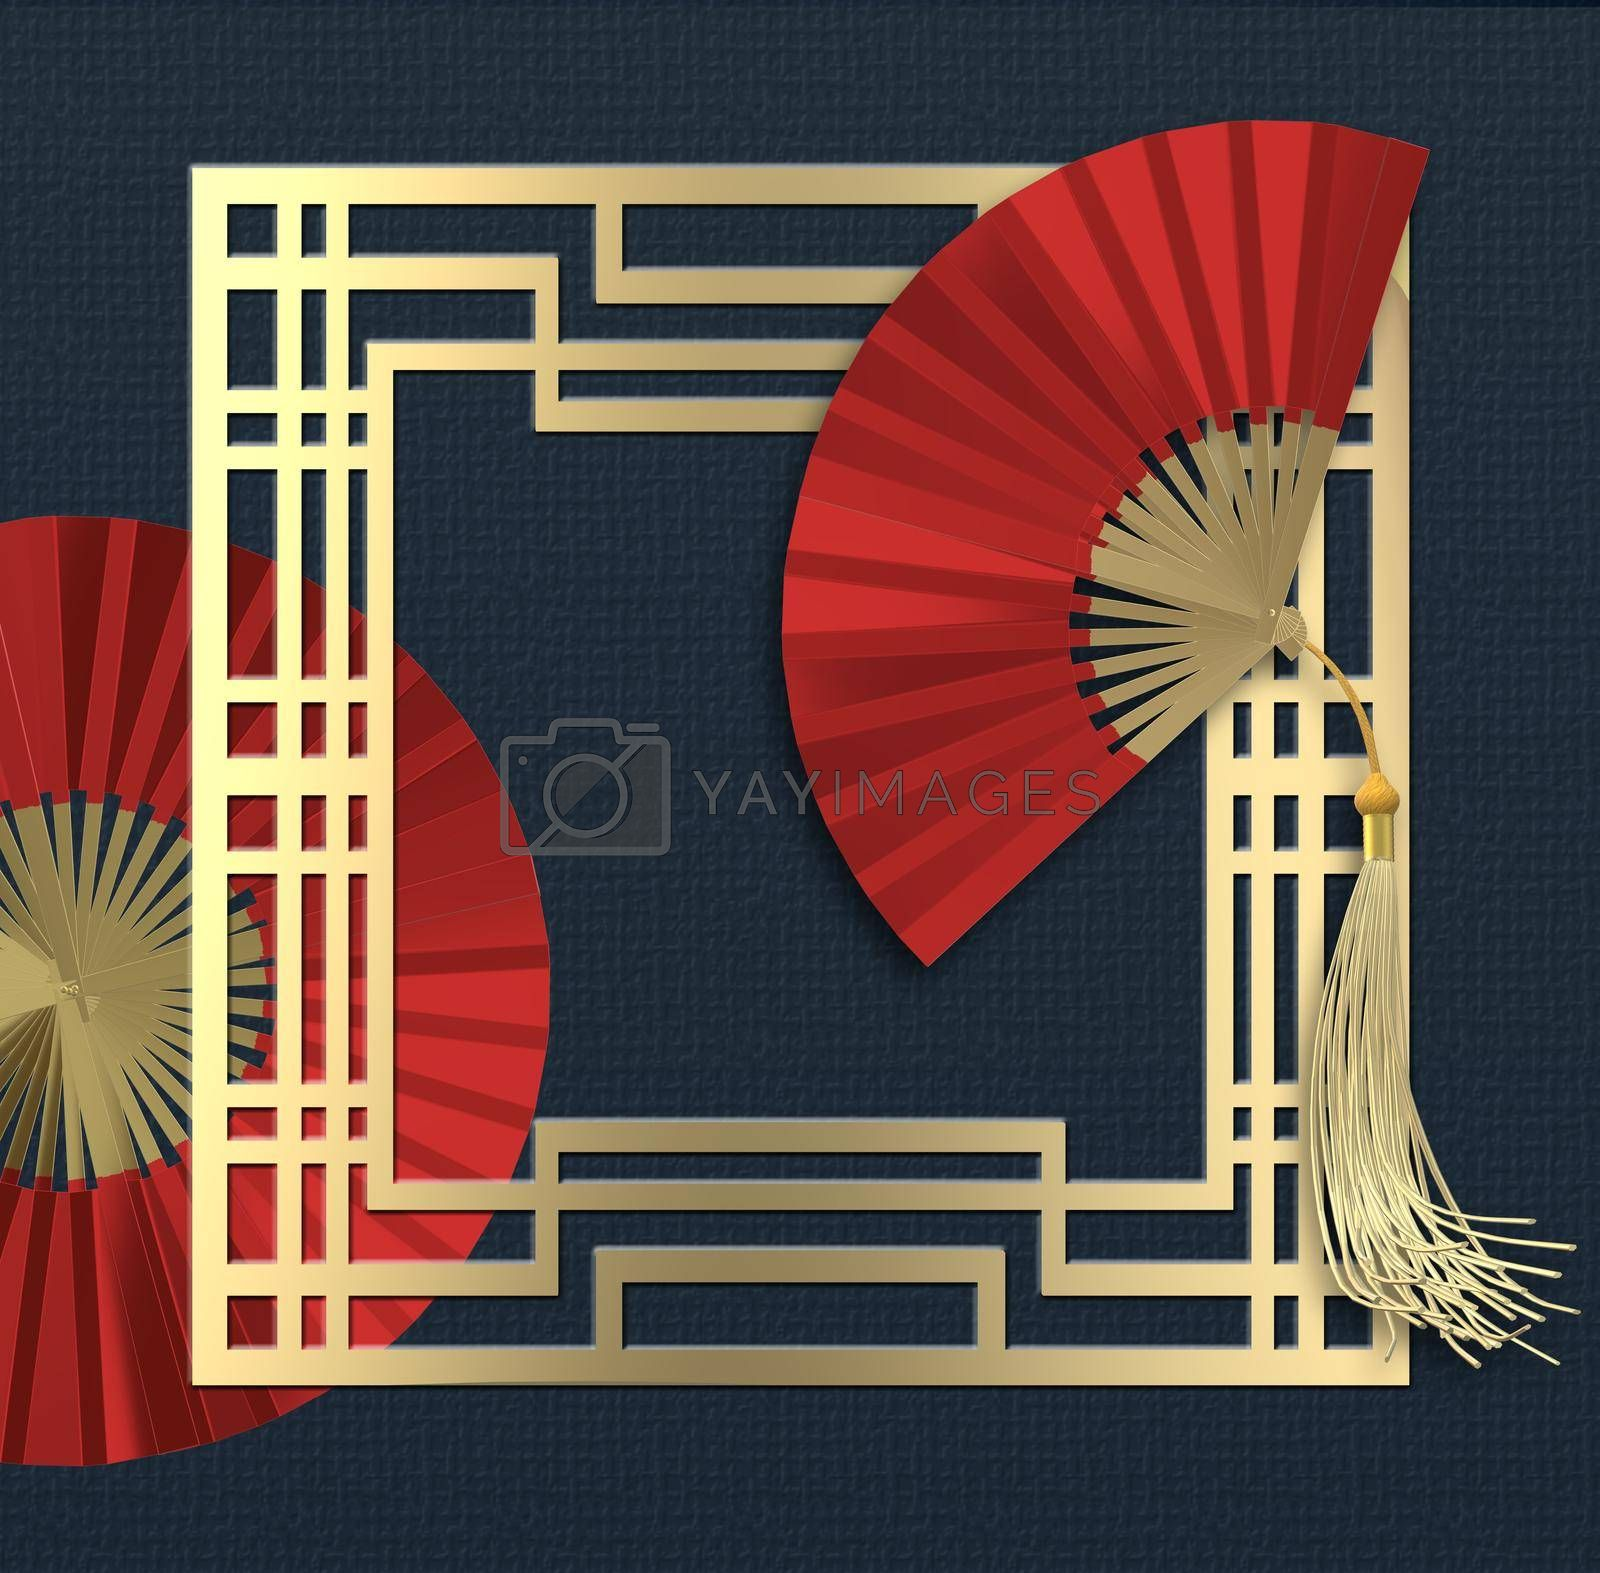 Chinese new year. Red paper fans, gold frame on blue background. Greetings card, invitation, posters, brochure, calendar, flyers, banner. Abstract minimalist 3D illustration